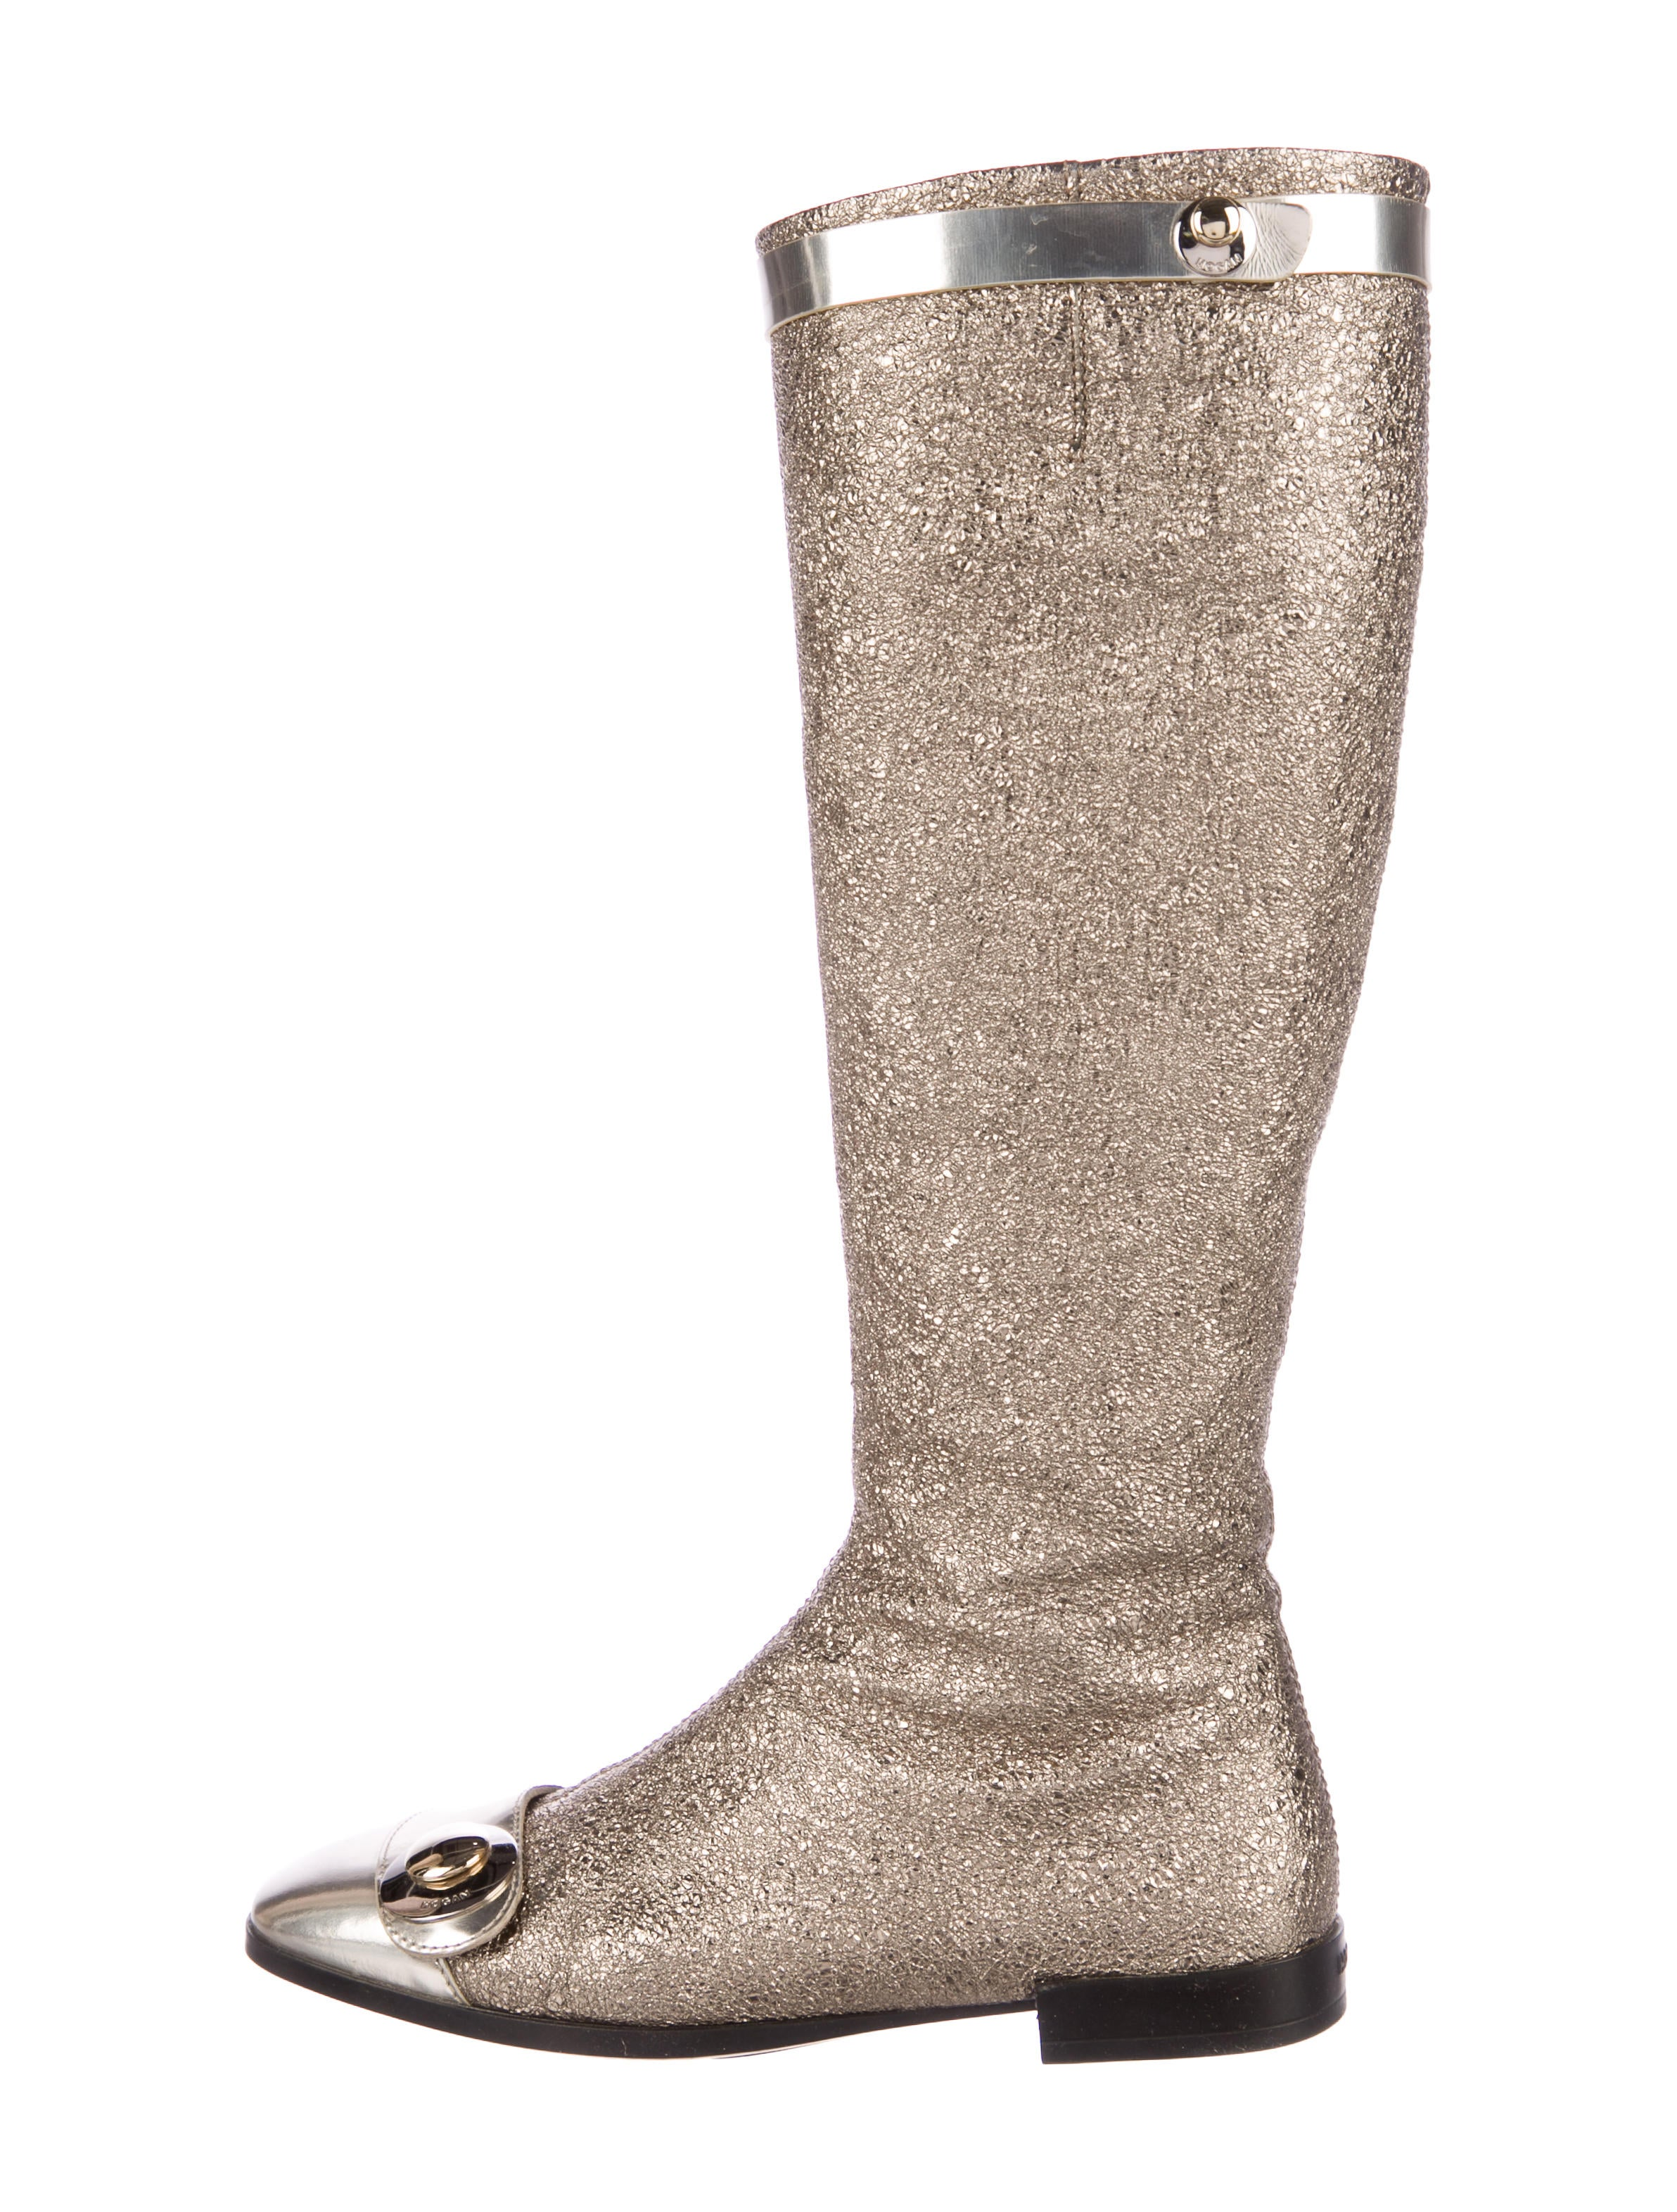 Metallic Leather Boots : Hogan metallic leather square toe knee high boots shoes